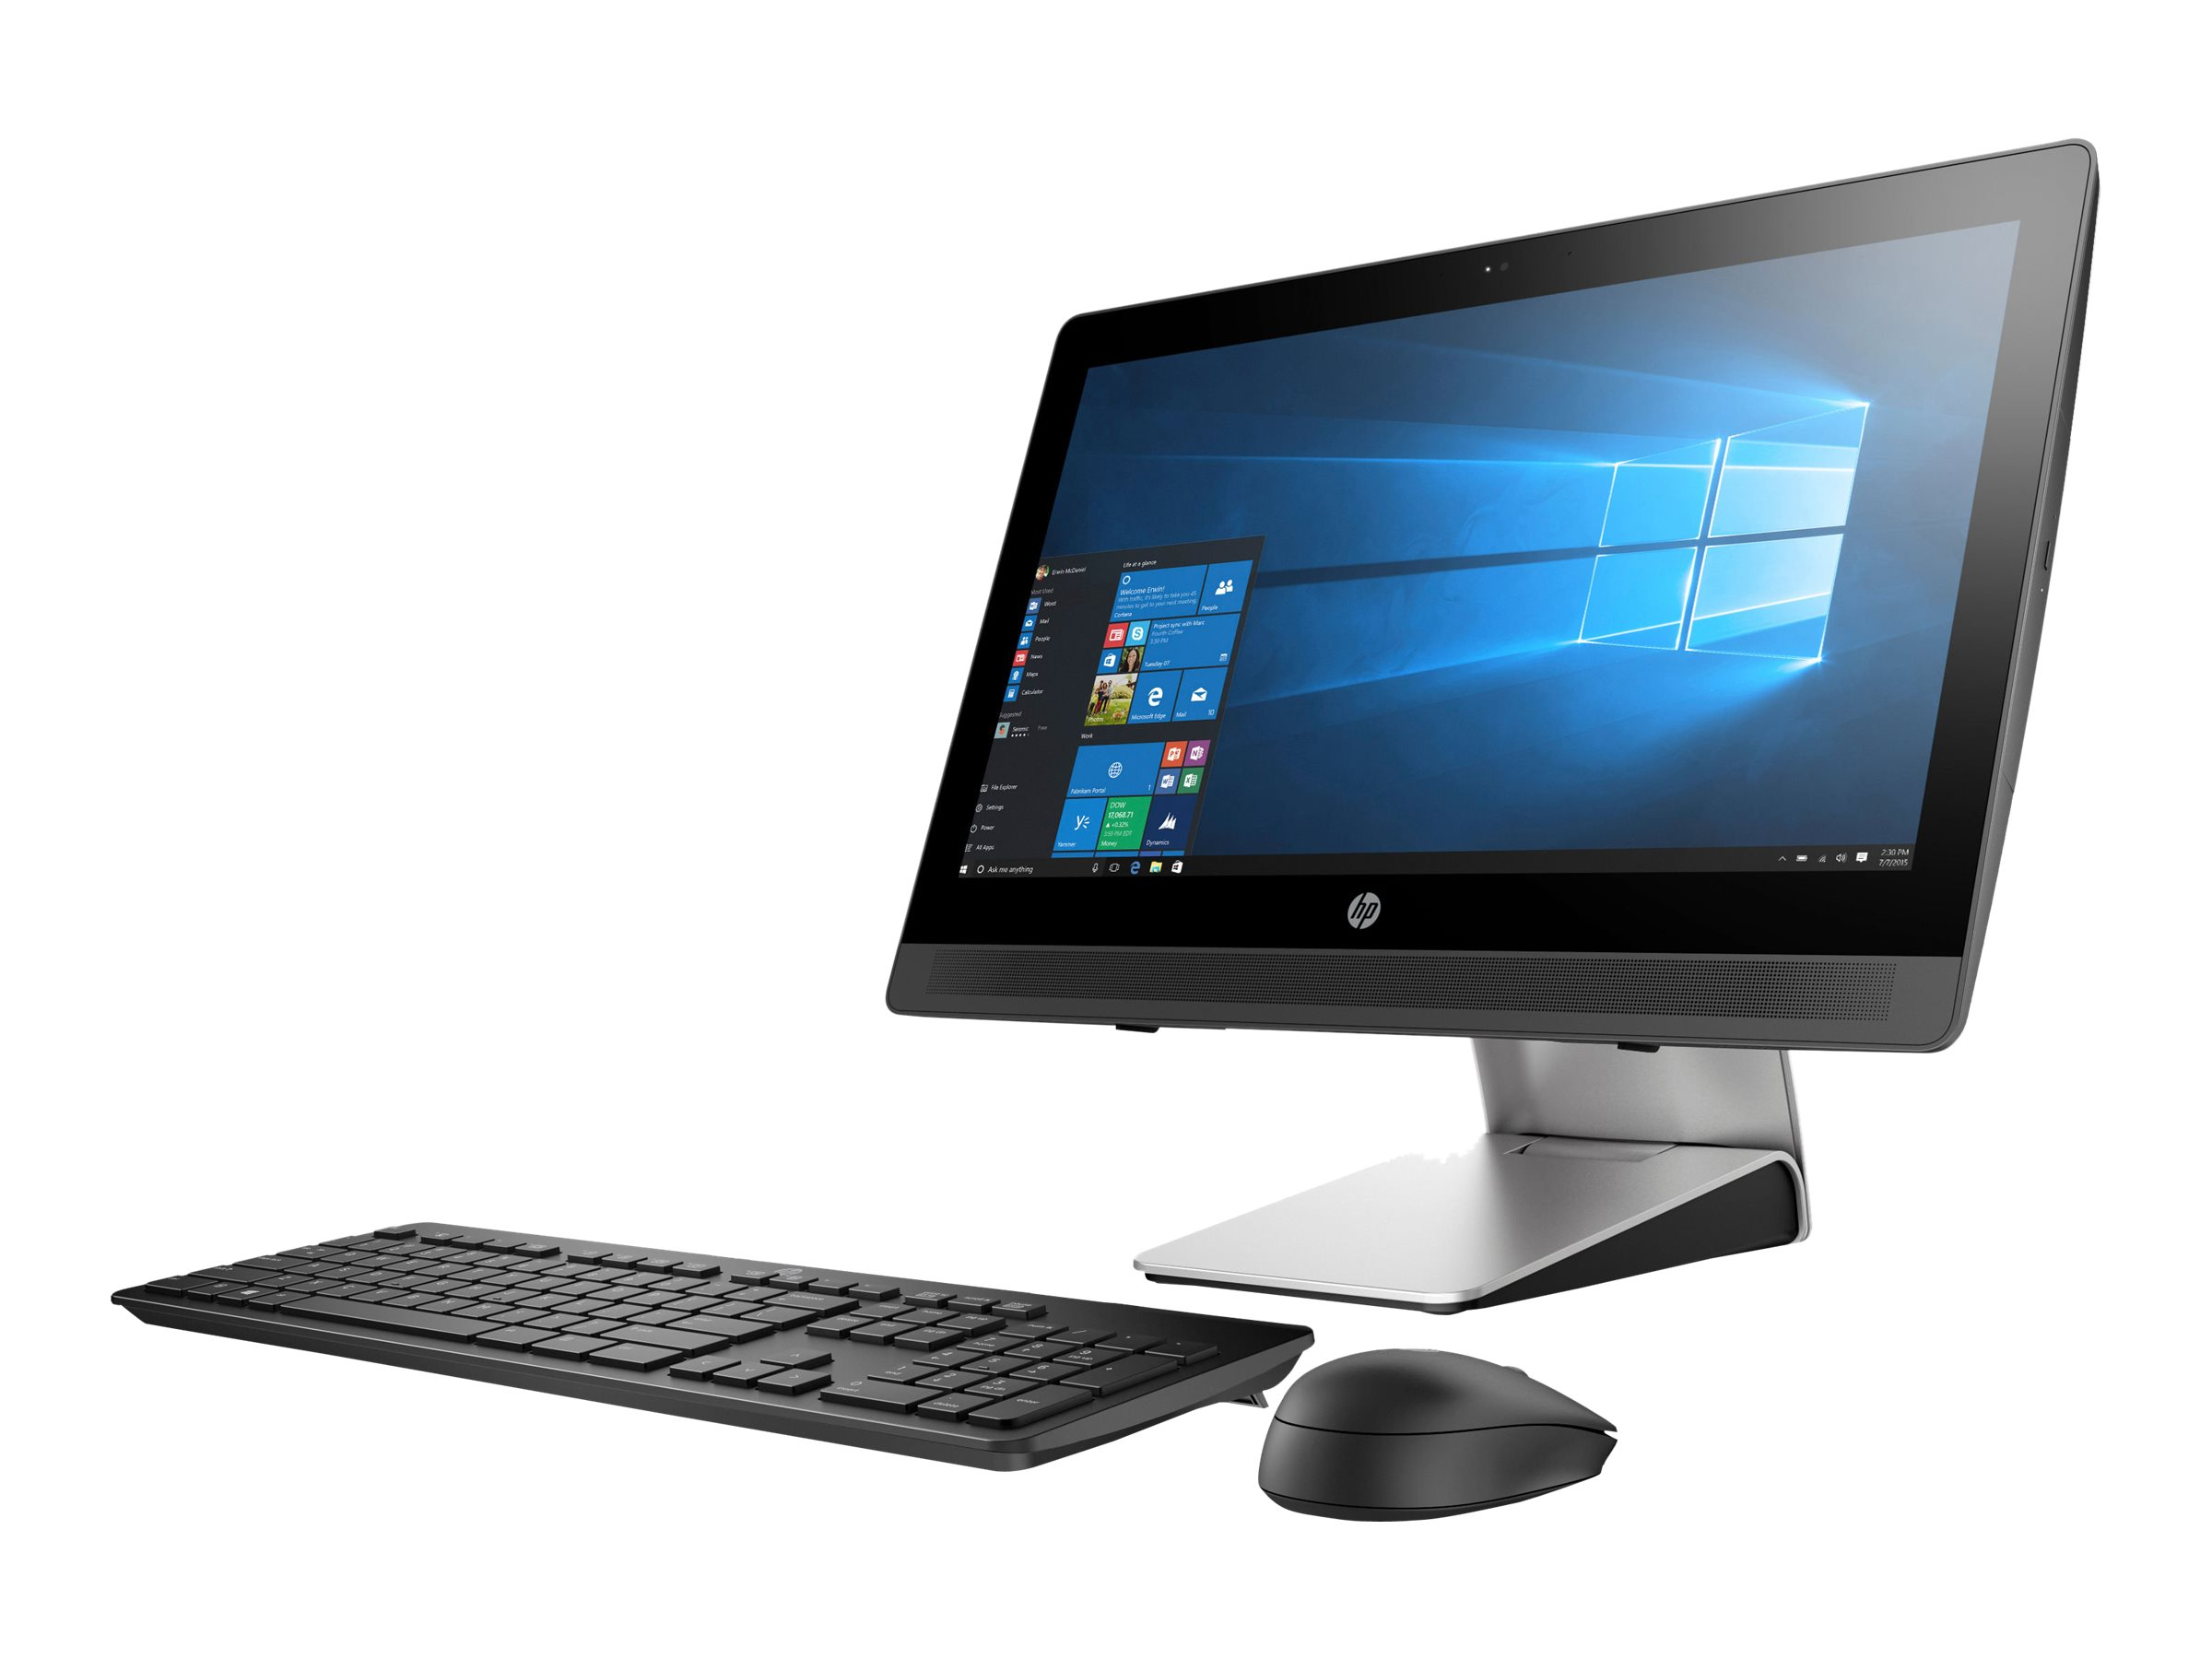 HP ProOne 400 G2 - All-in-One (Komplettlösung) - 1 x Core i5 6500T / 2.5 GHz - RAM 8 GB - HDD 1 TB - DVD SuperMulti